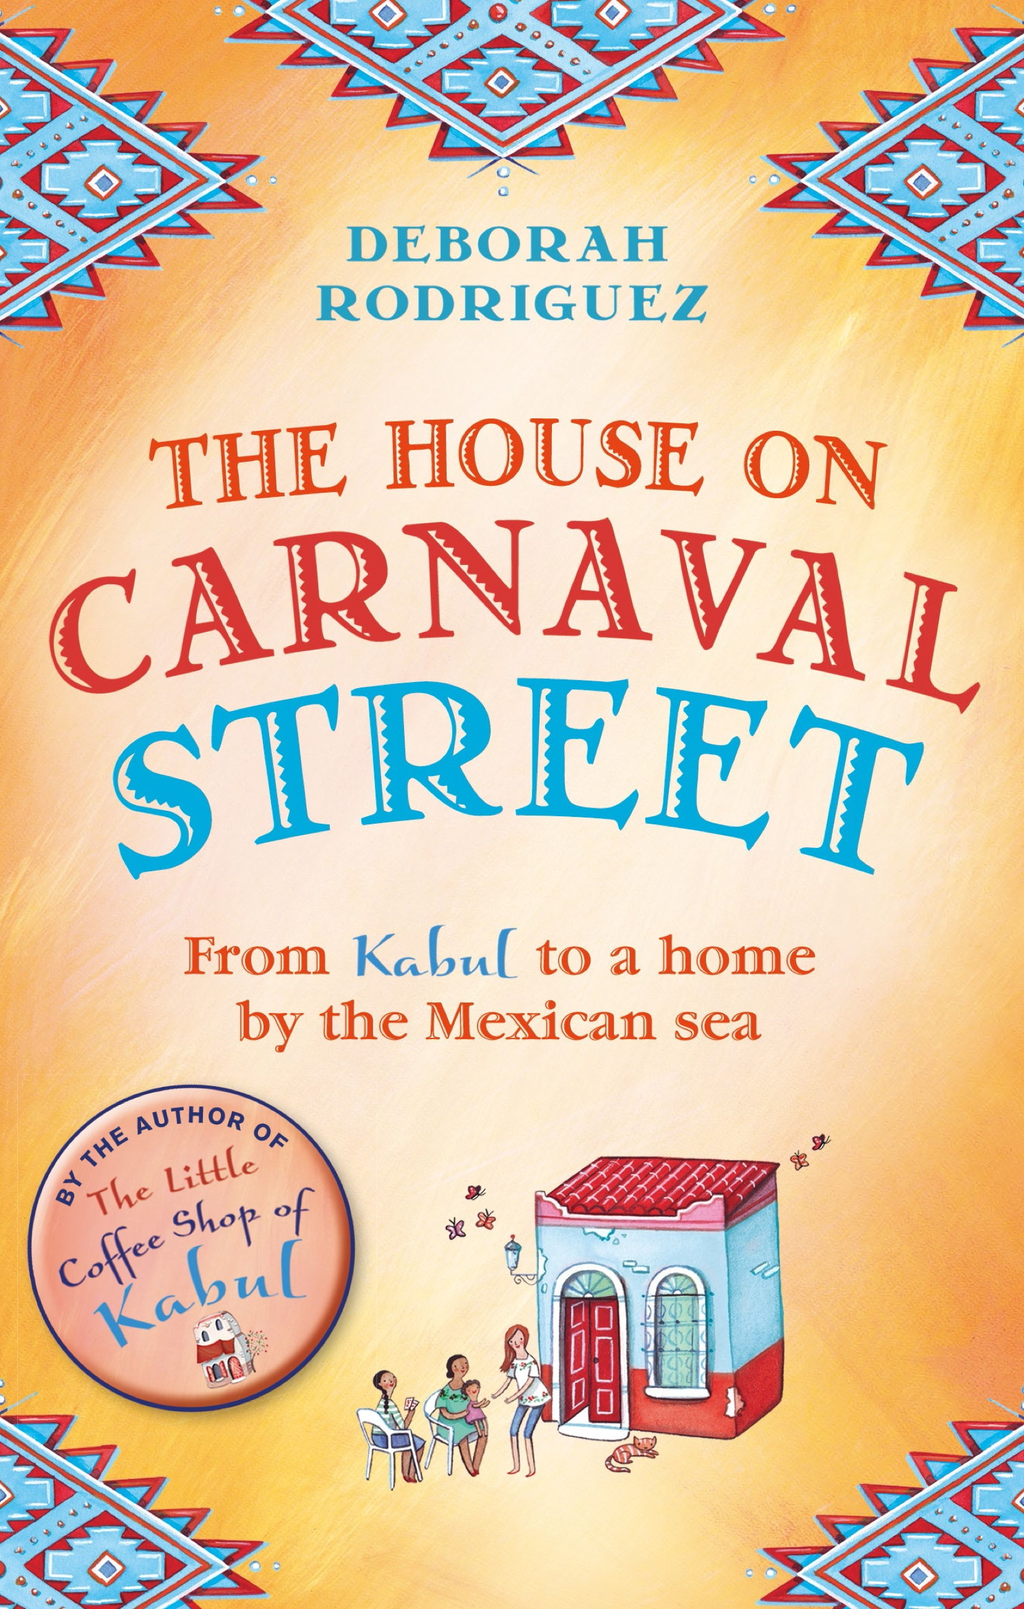 The House on Carnaval Street From Kabul to a Home by the Mexican Sea